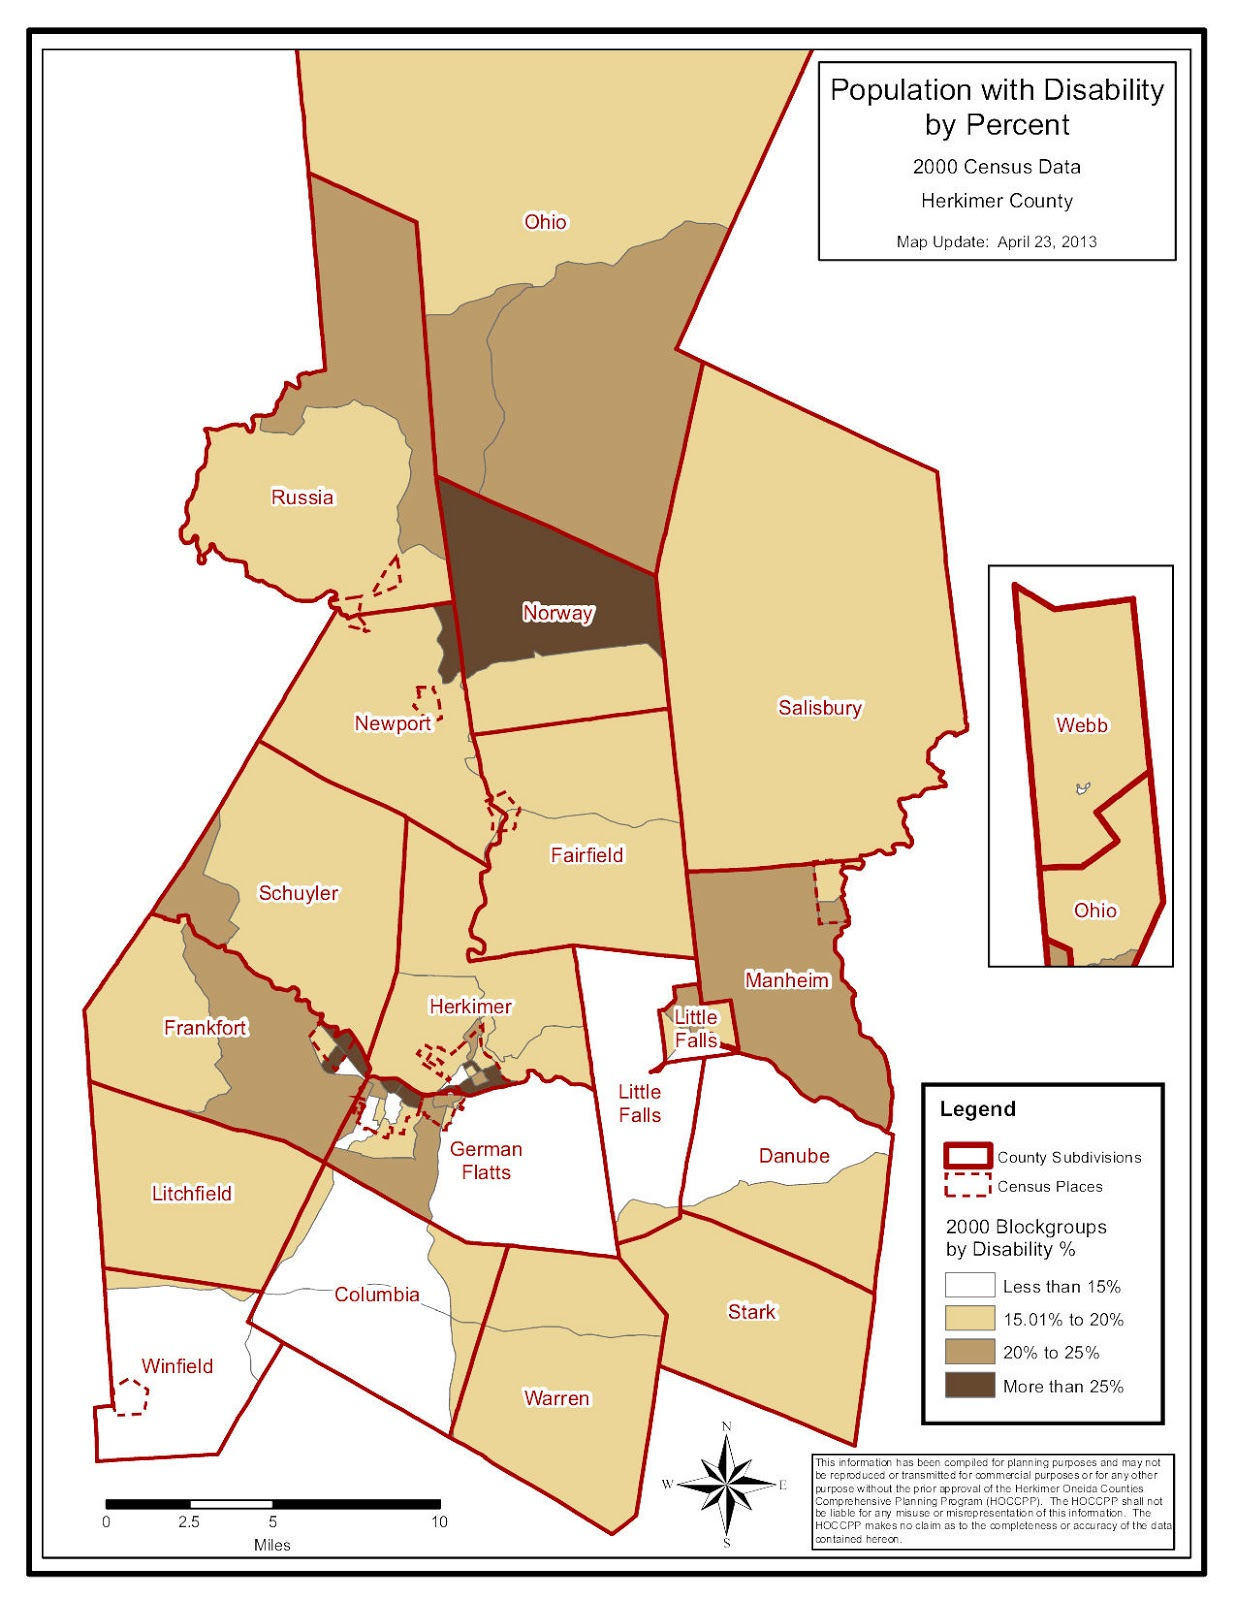 click to enlarge herkimer county disabilities map